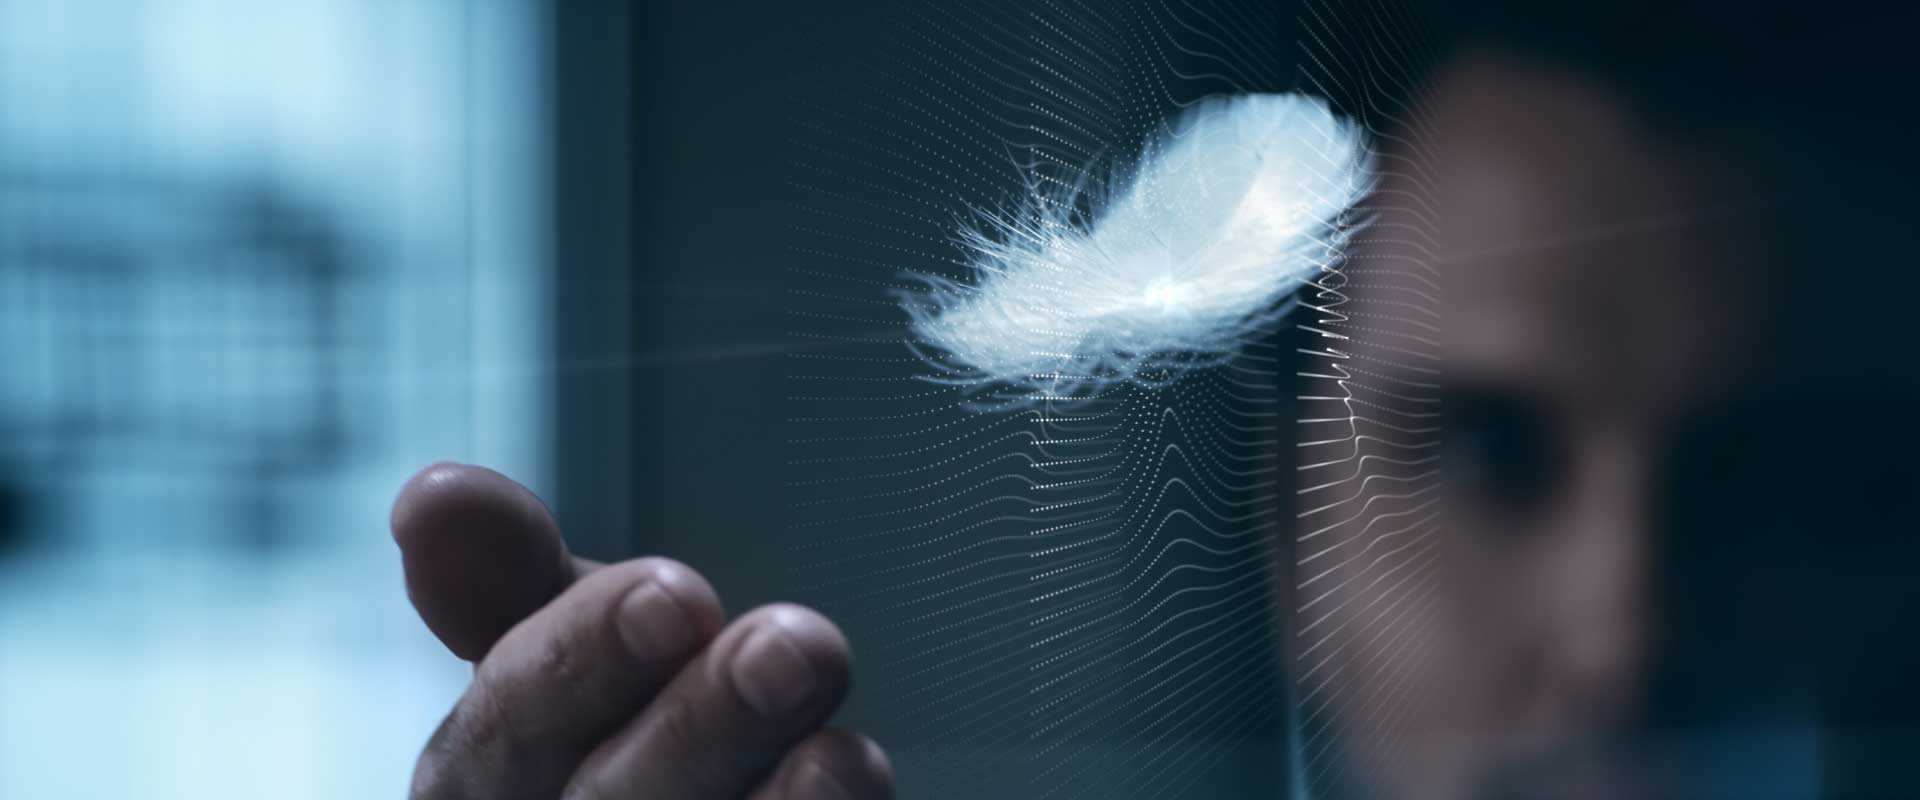 Feather. Still from Lexus Commercial.